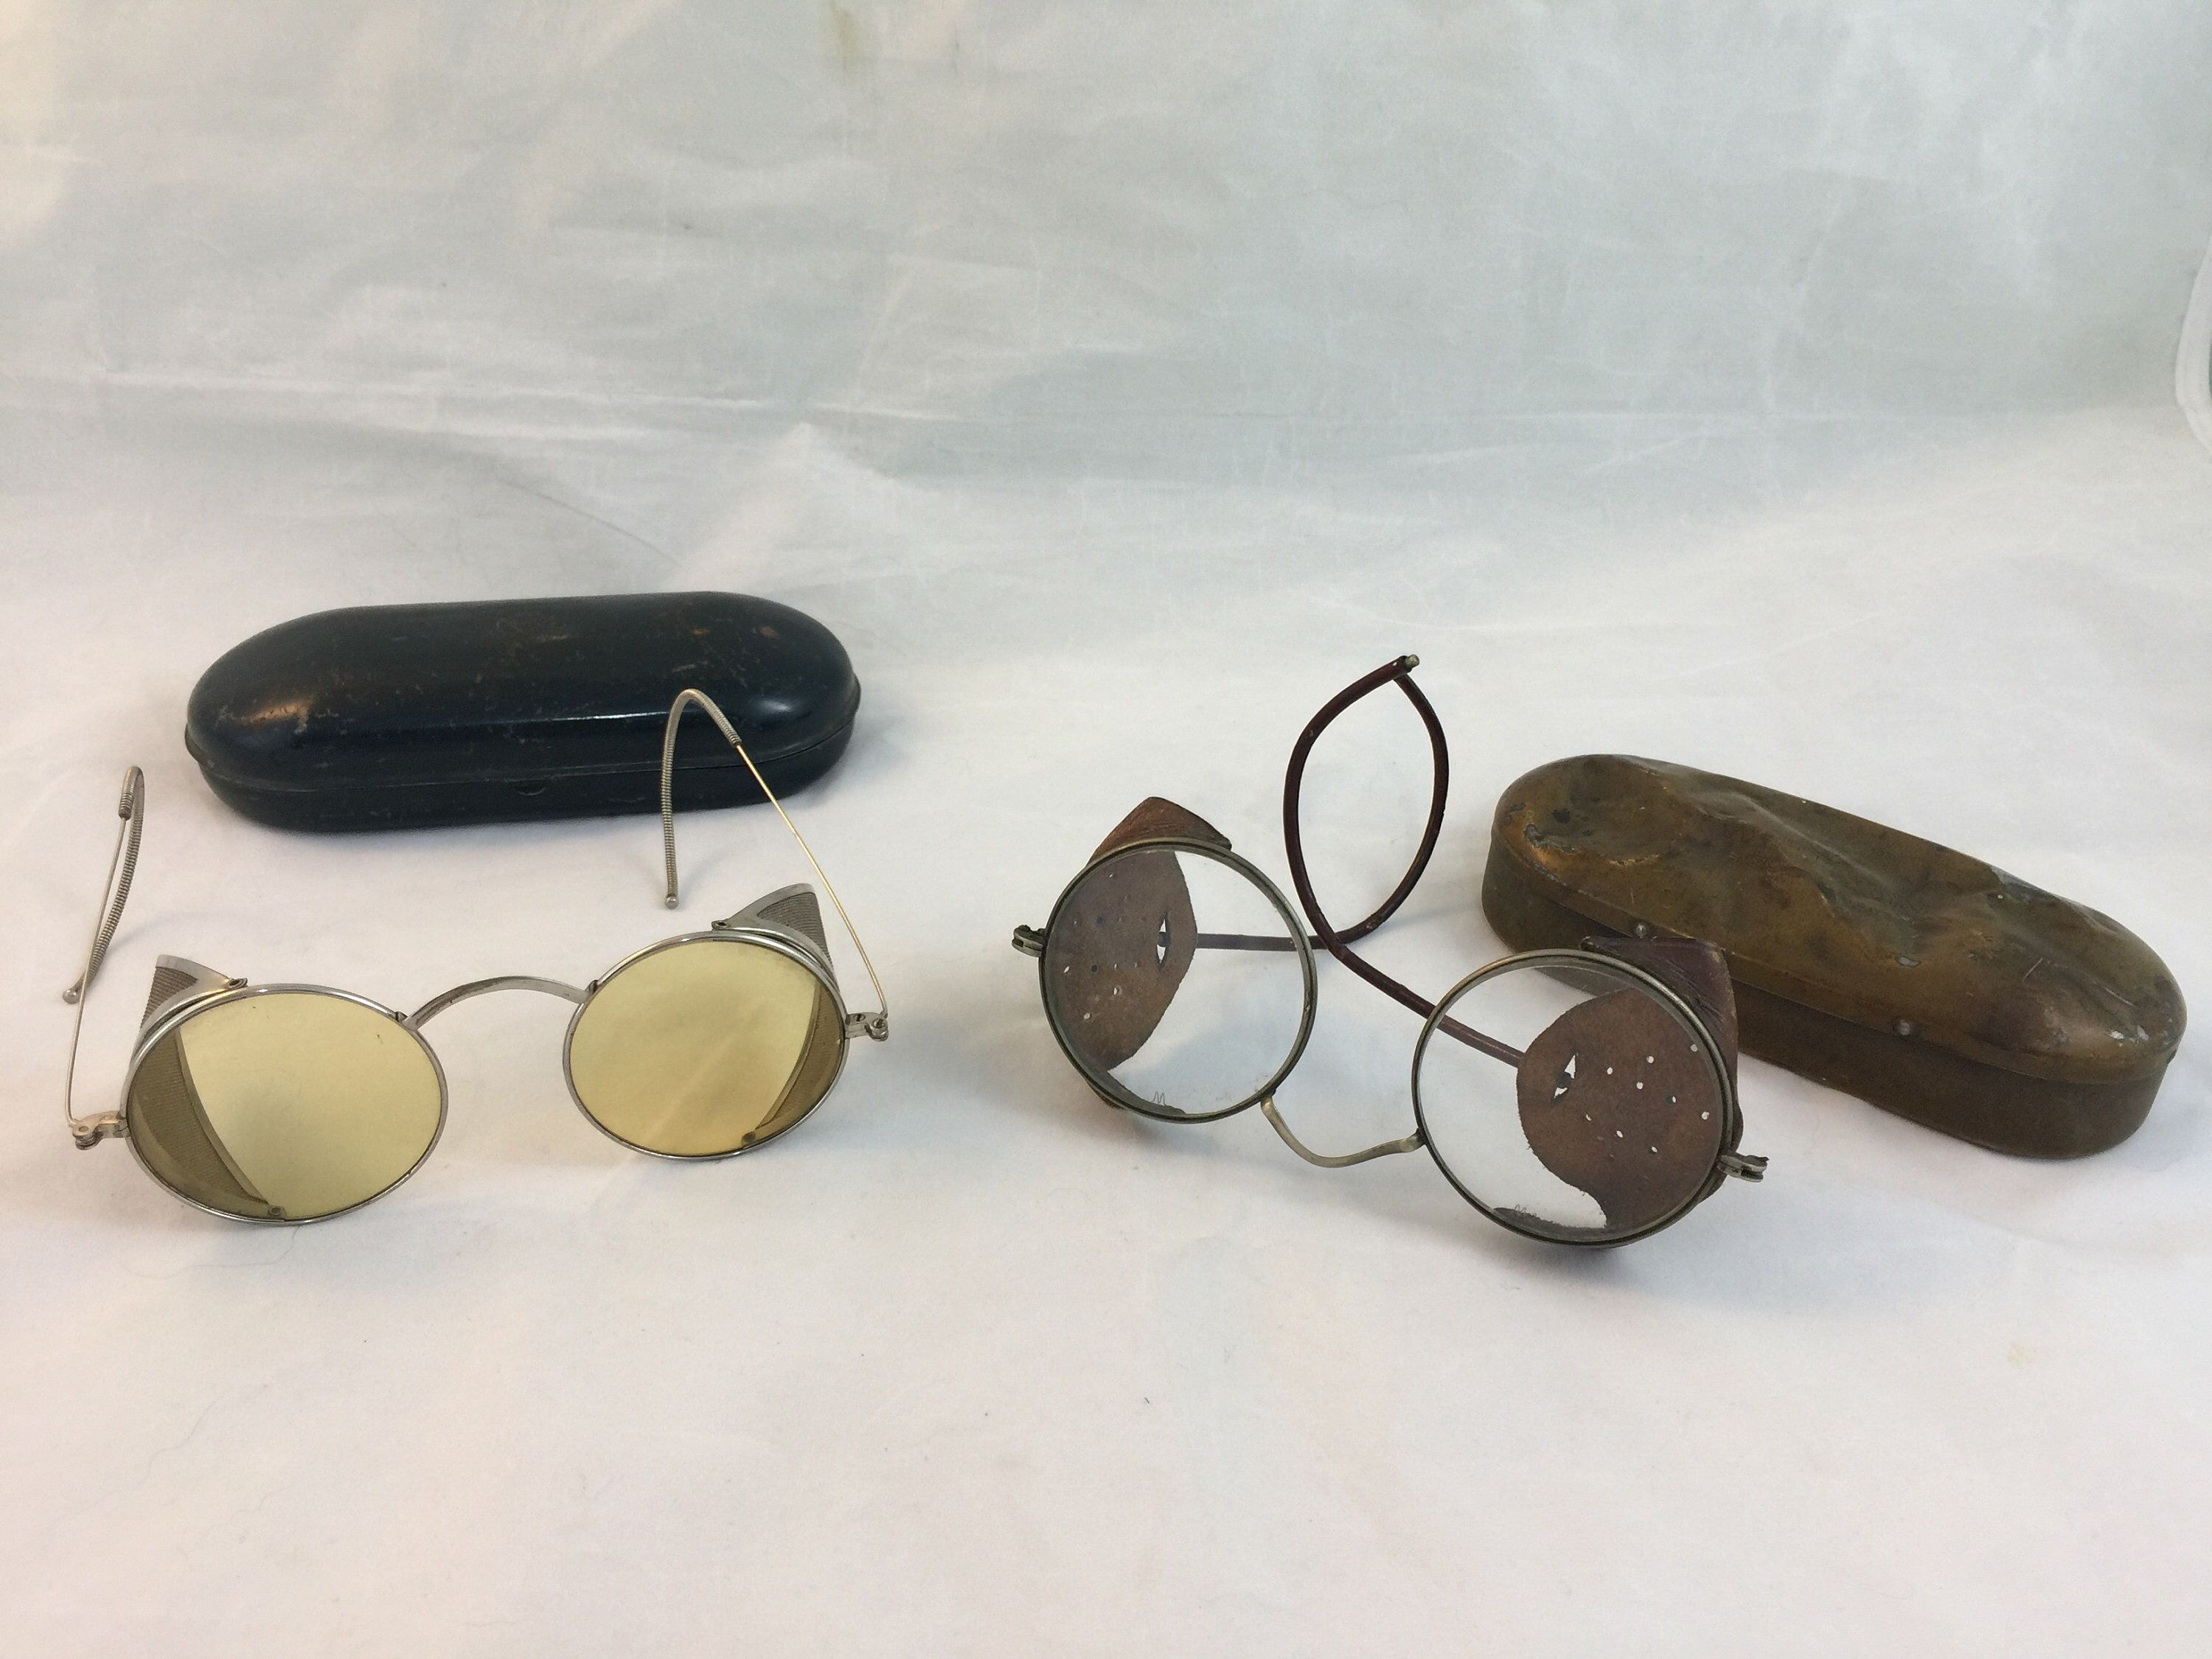 Antique Driving Glasses Safety Glasses Driving Googles